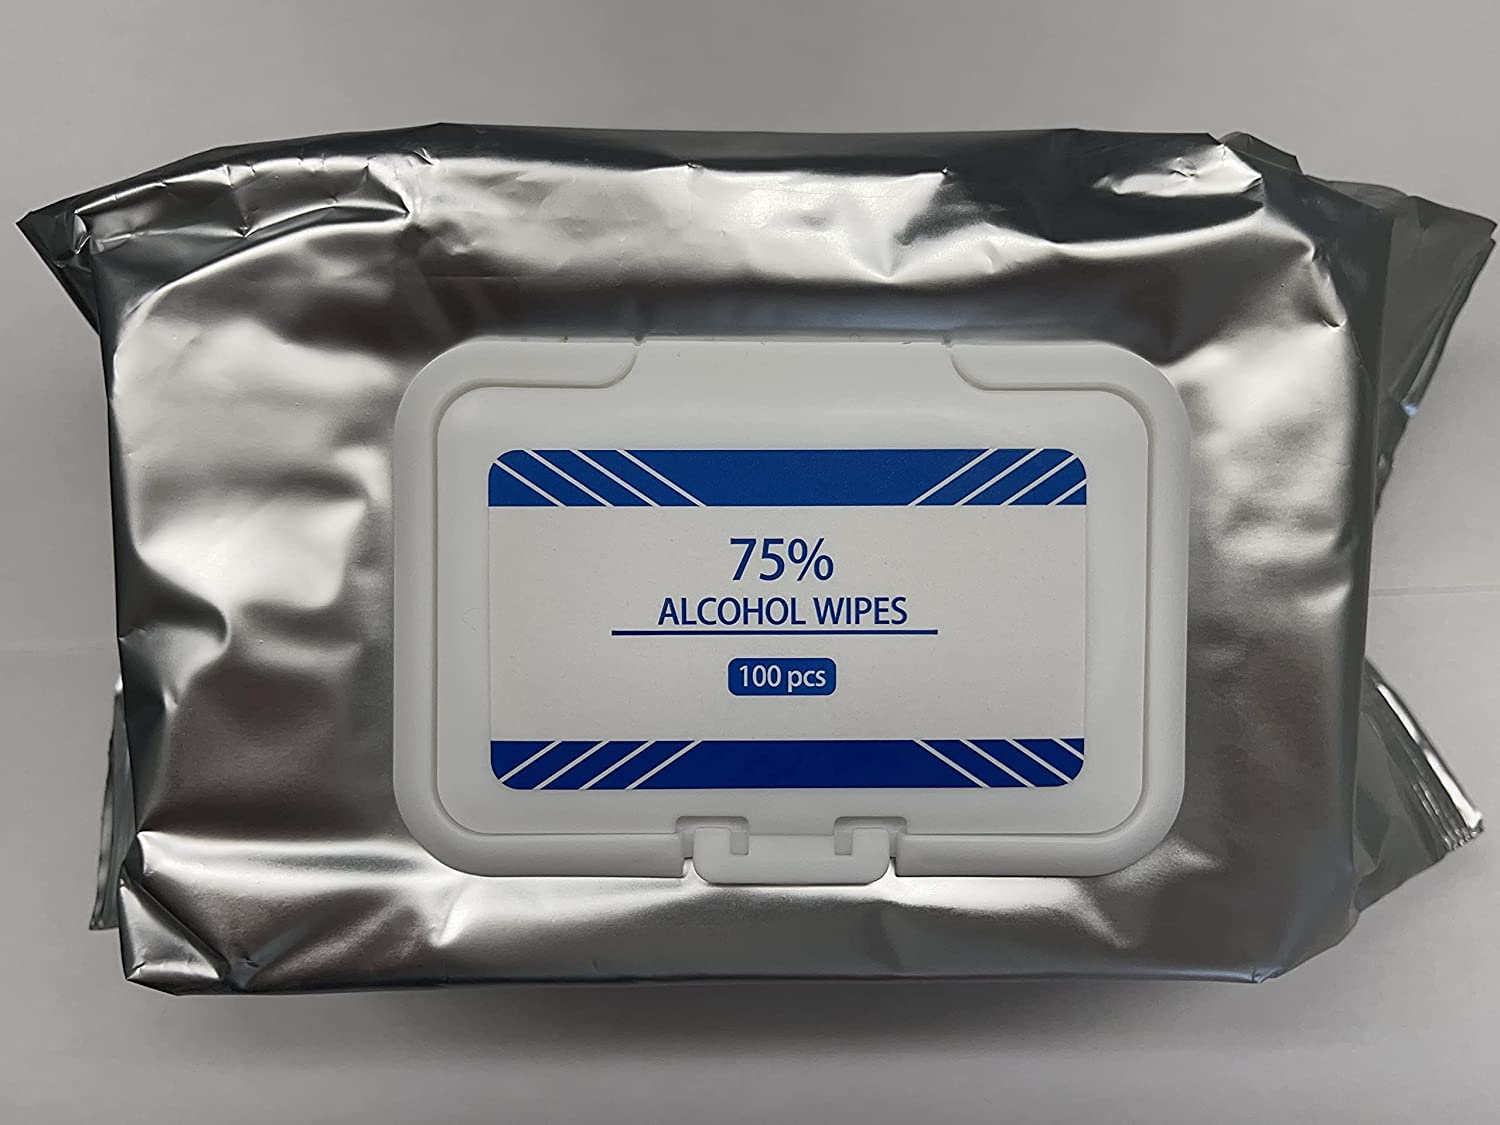 Max 48% OFF Very popular 75% Alcohol Wipes